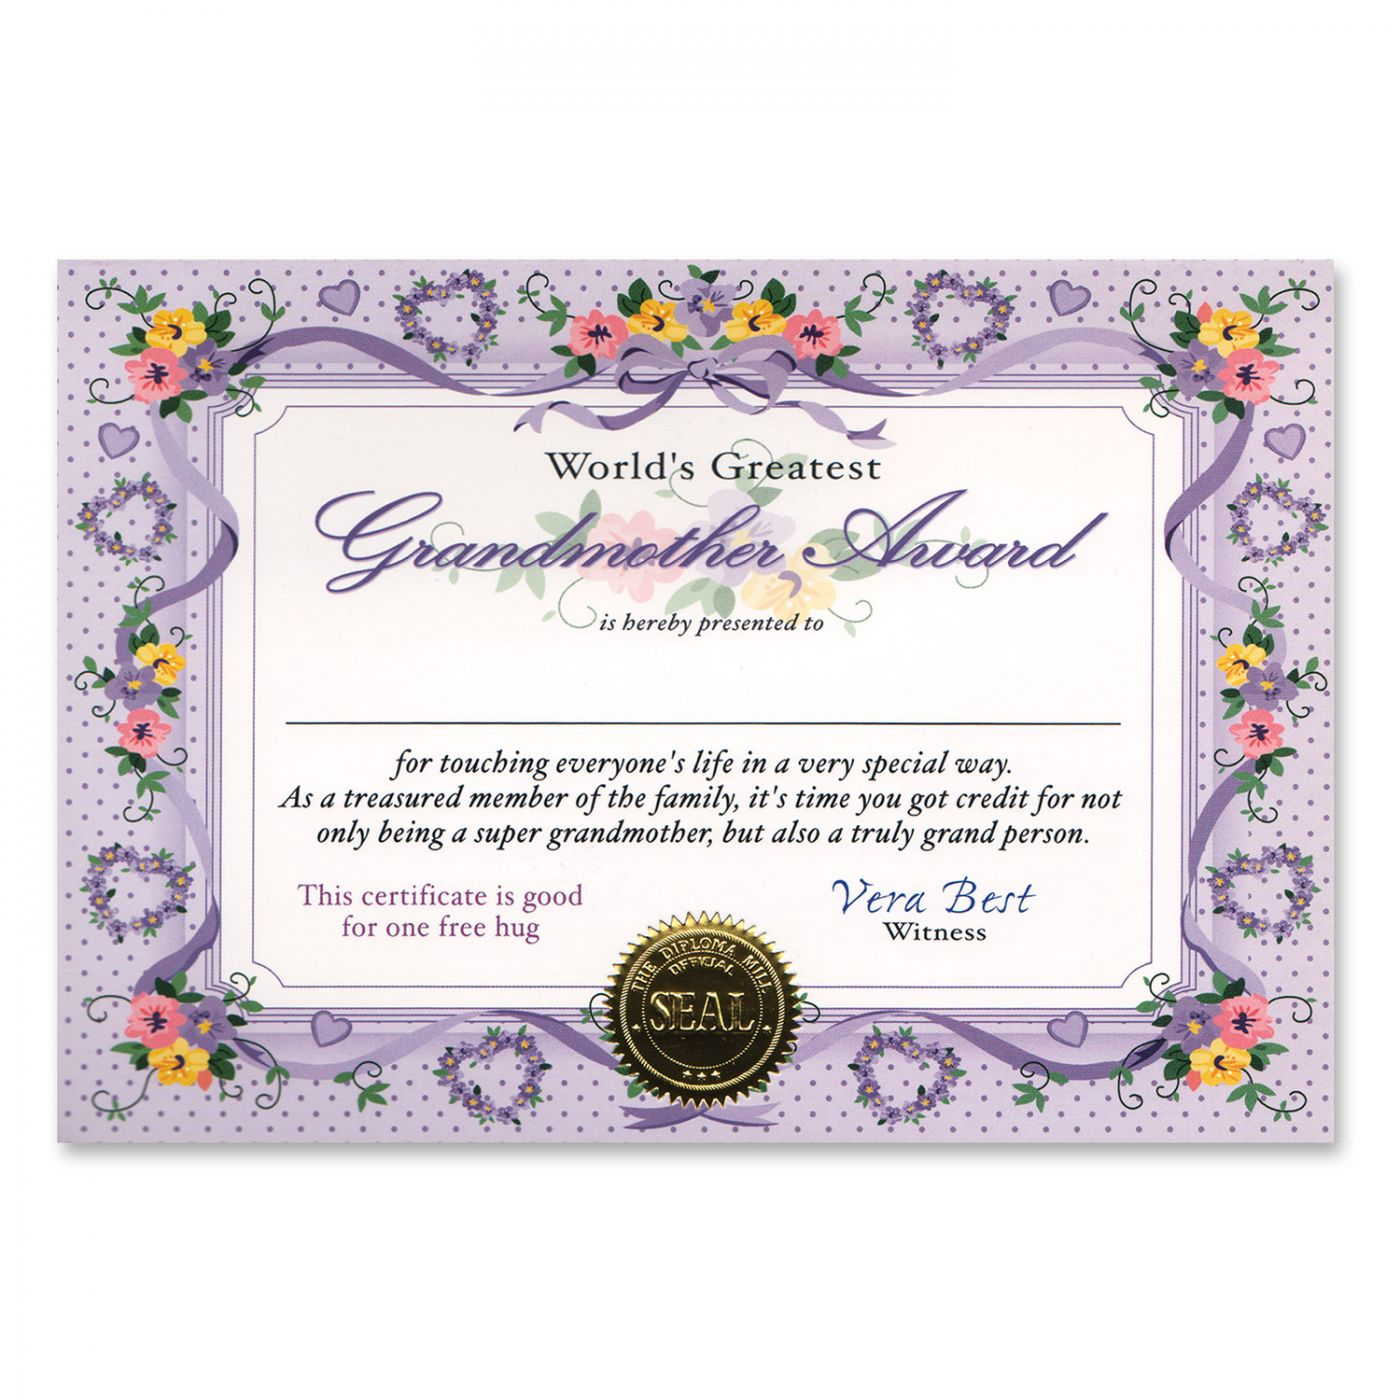 World's Greatest Grandmother Certificate (6) image